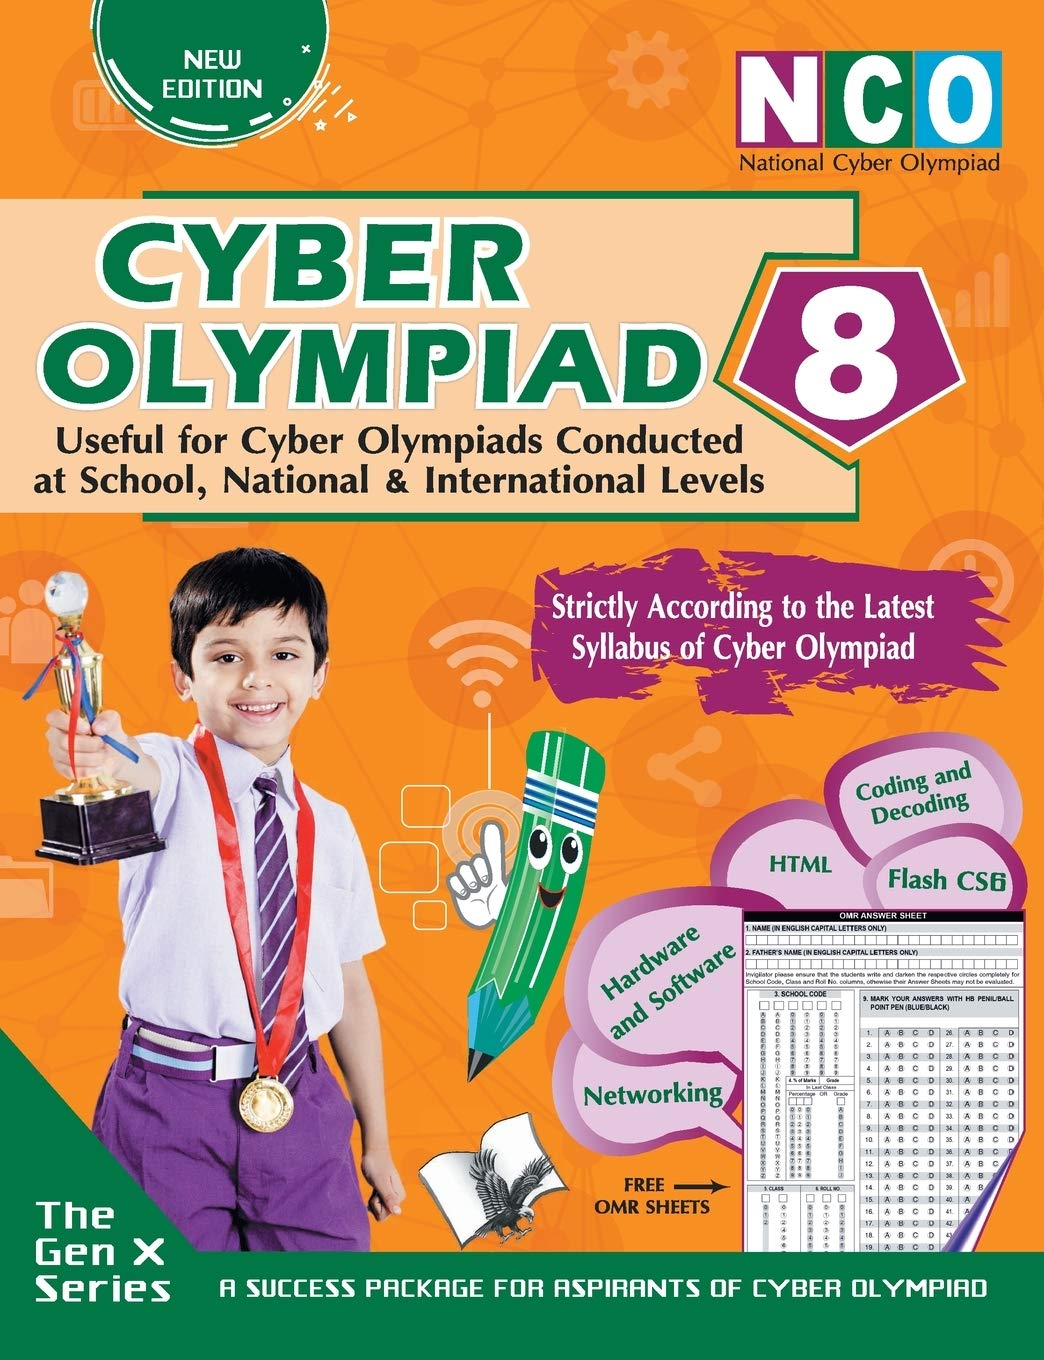 Cyber Olympiad 8 (Useful for Cyber Olympiads Conducted at School, National & International Levels)